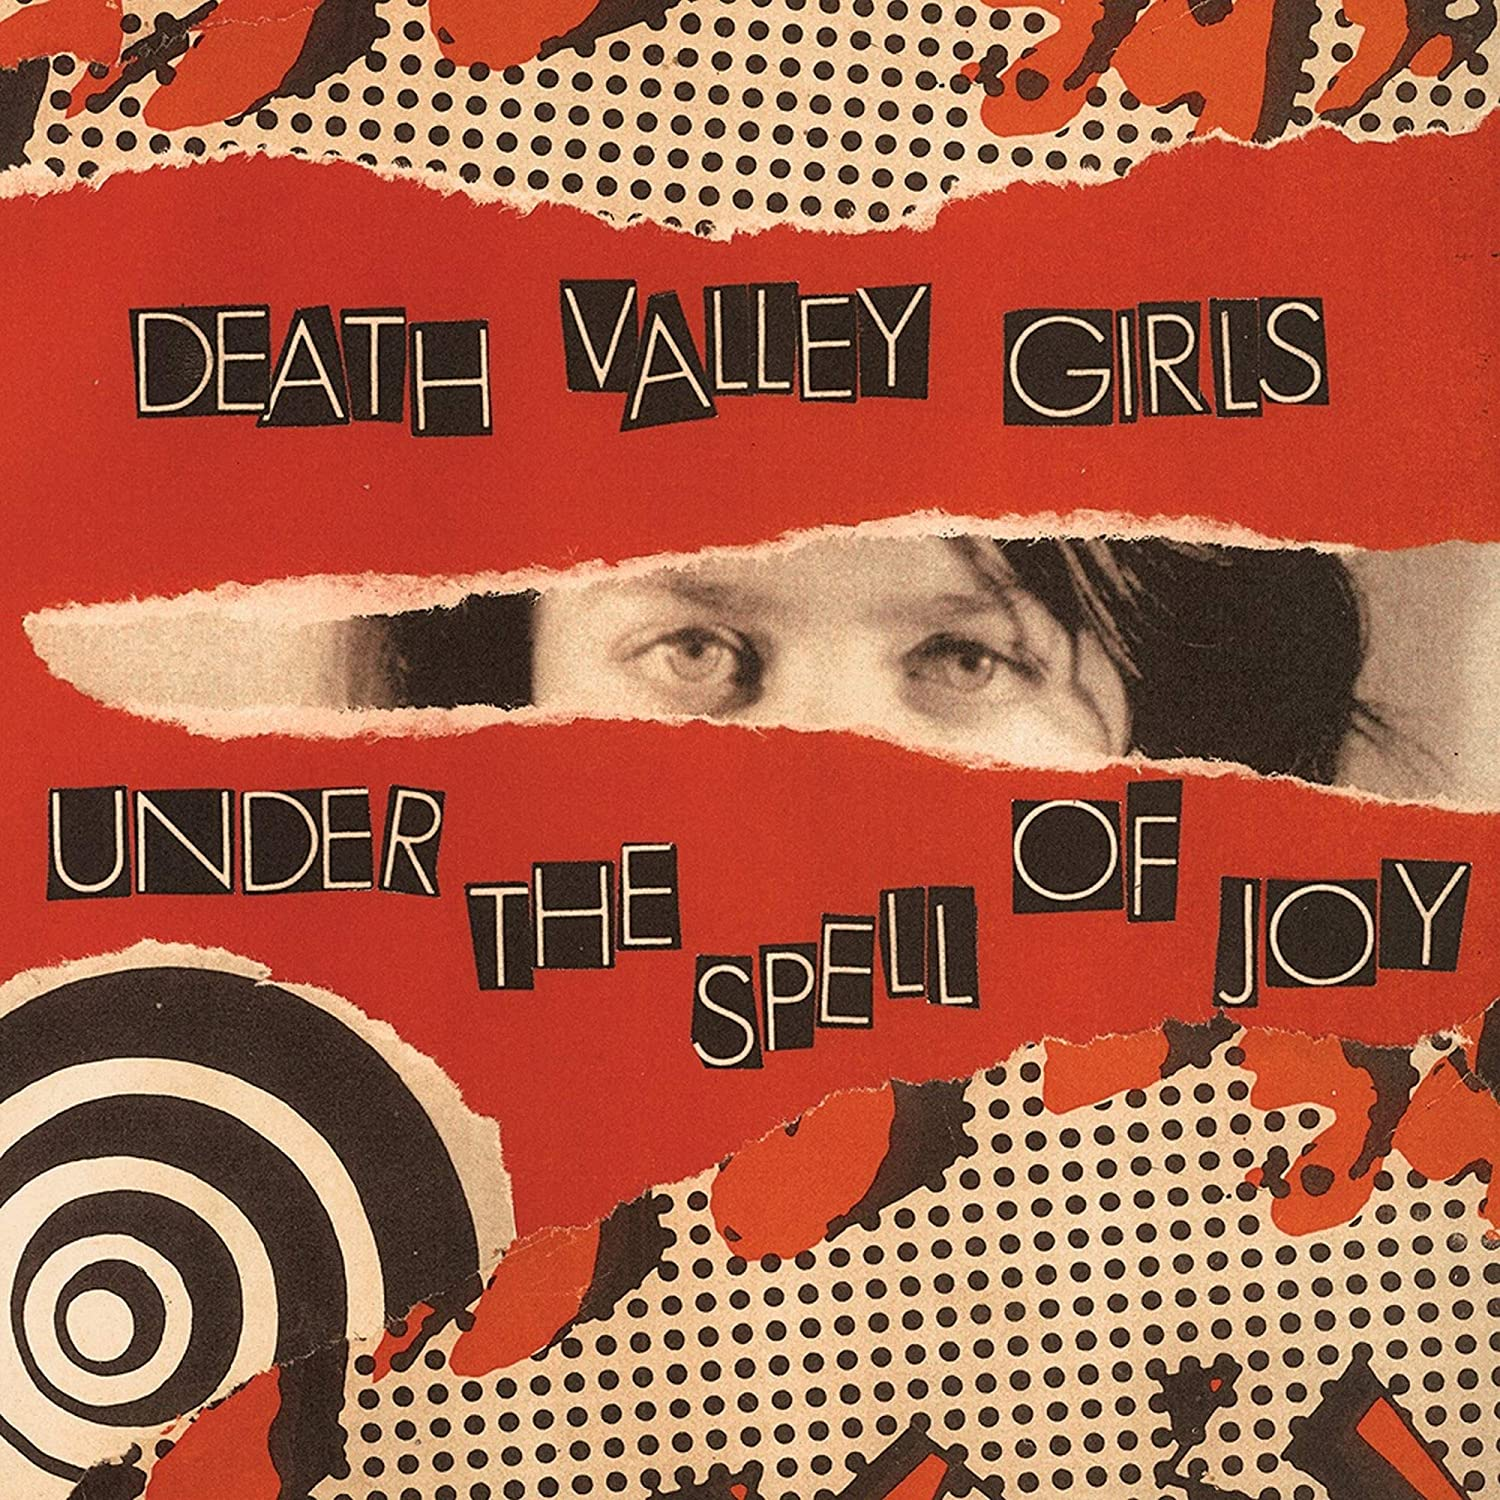 Buy DEATH VALLEY GIRLS - UNDER THE SPELL OF JOY New or Used via Amazon